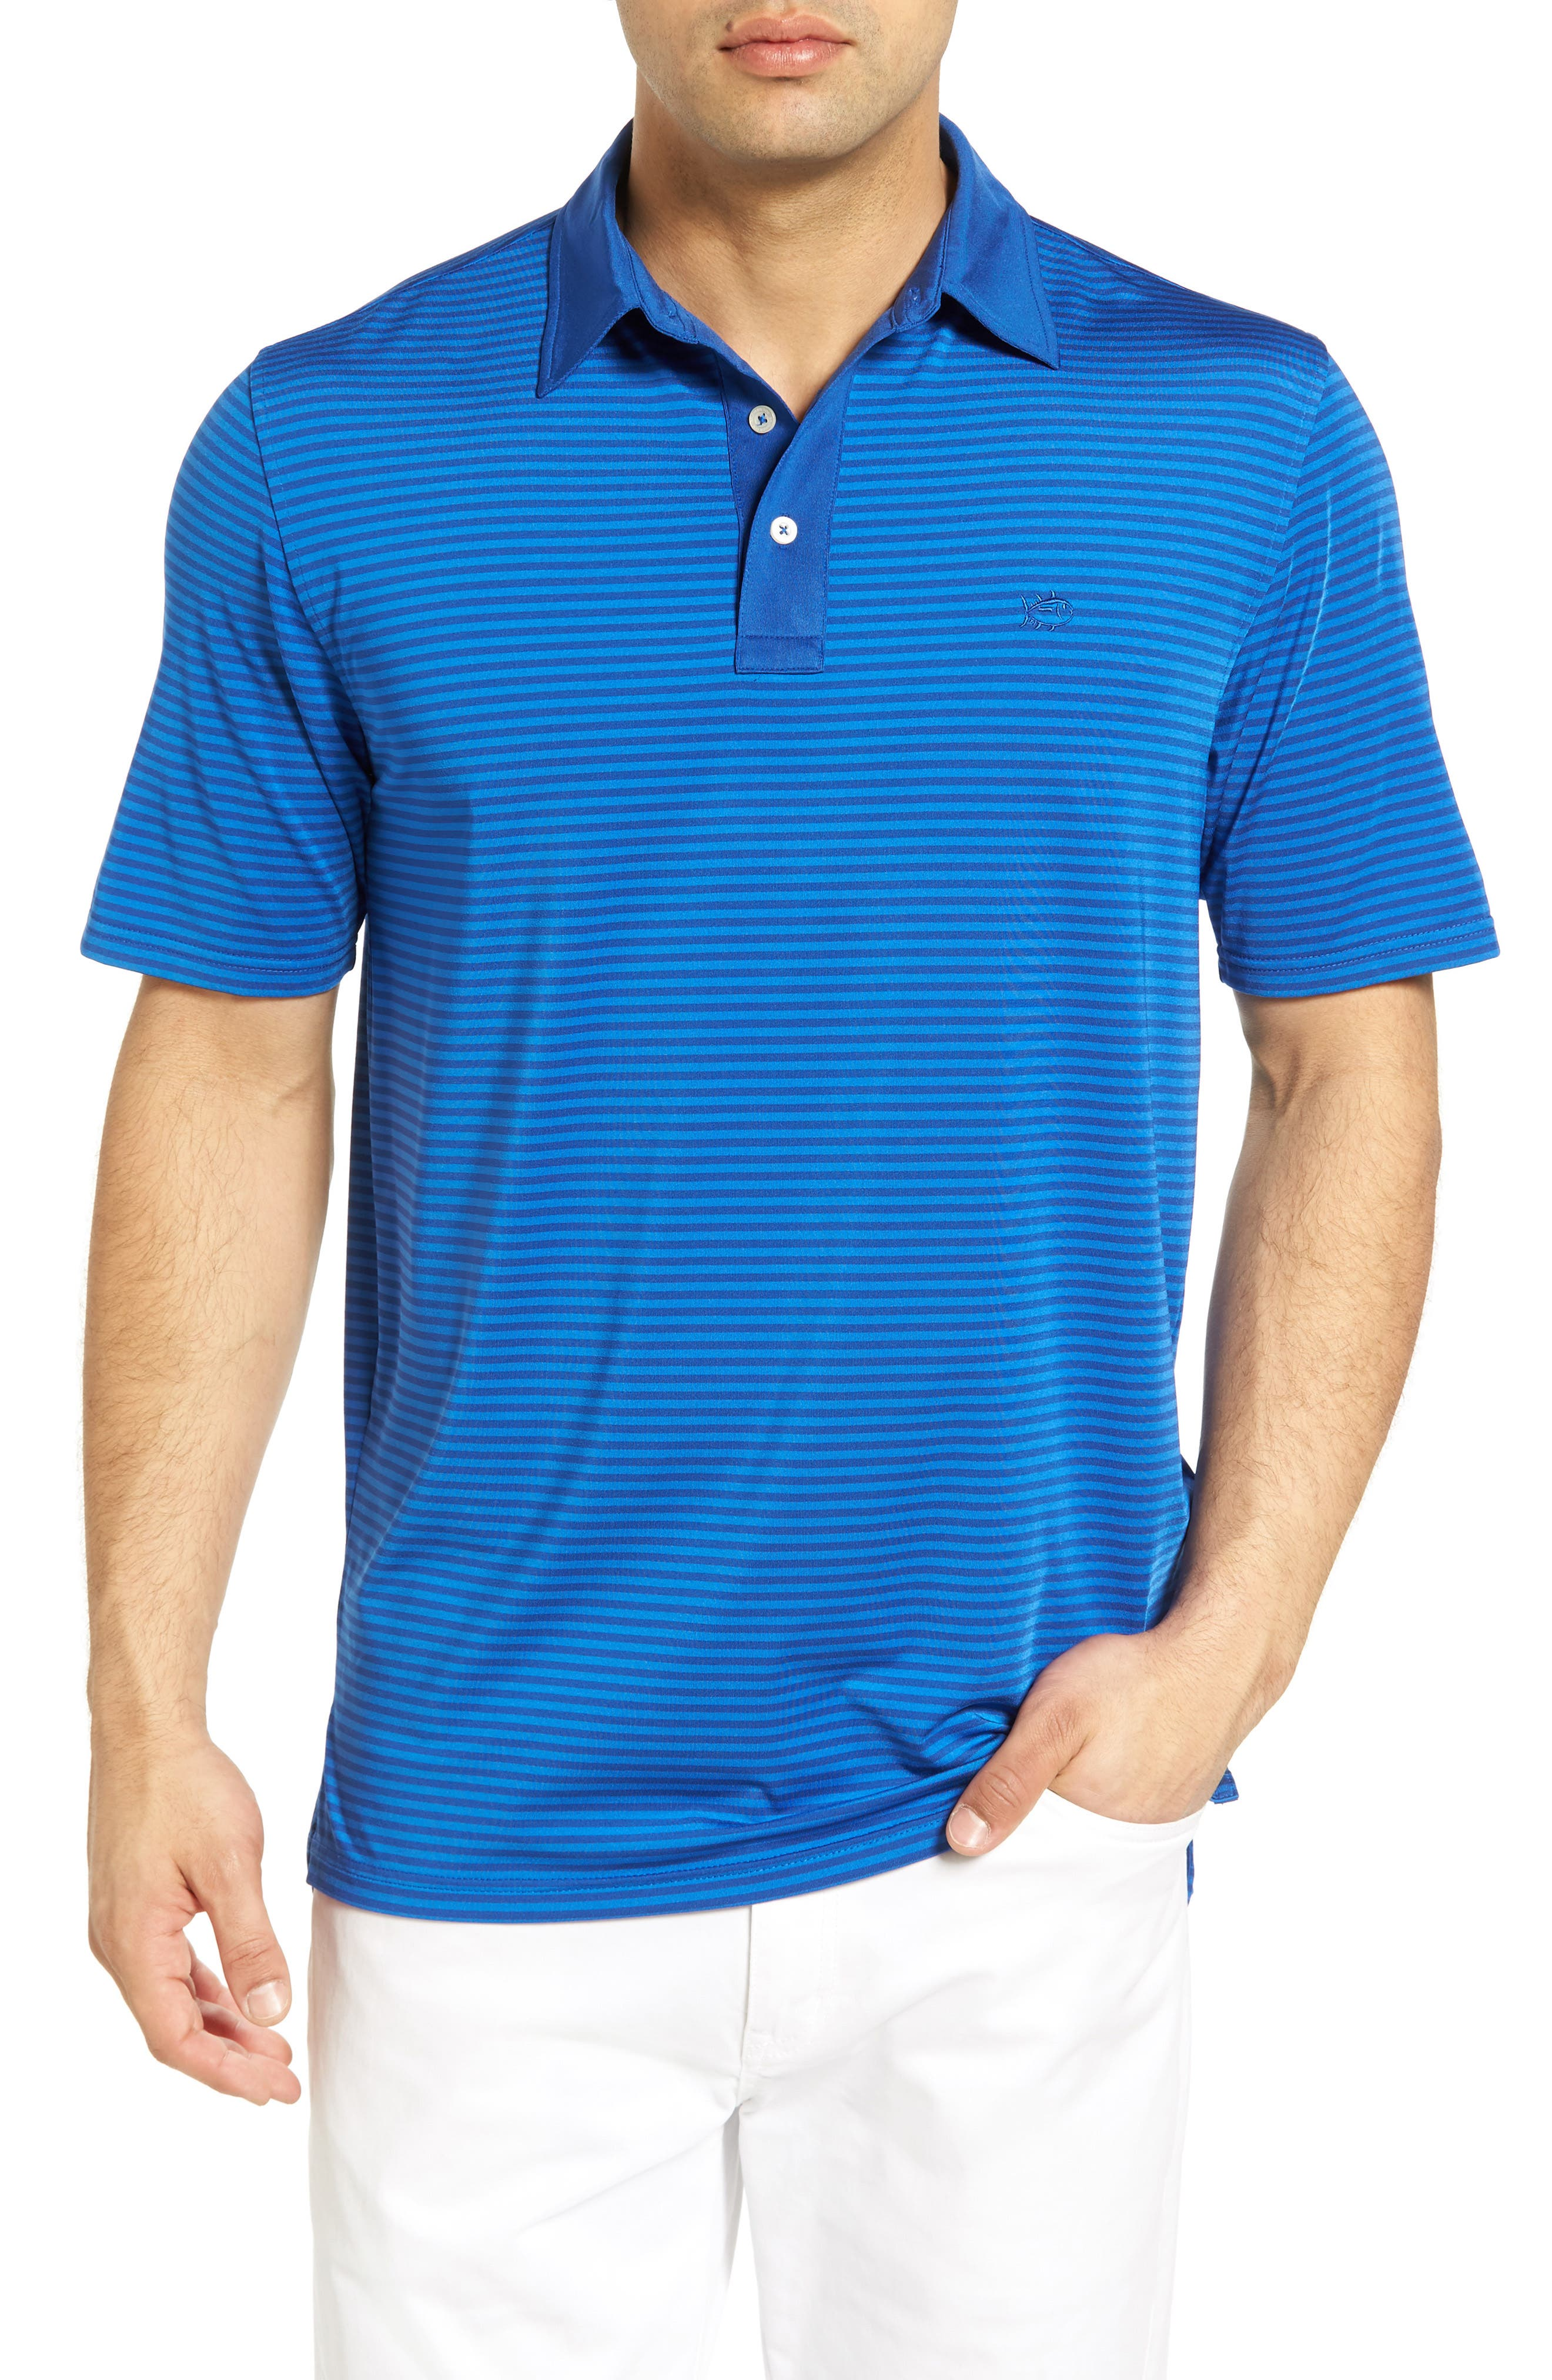 Southern Tide Game Set Match Performance Golf Polo